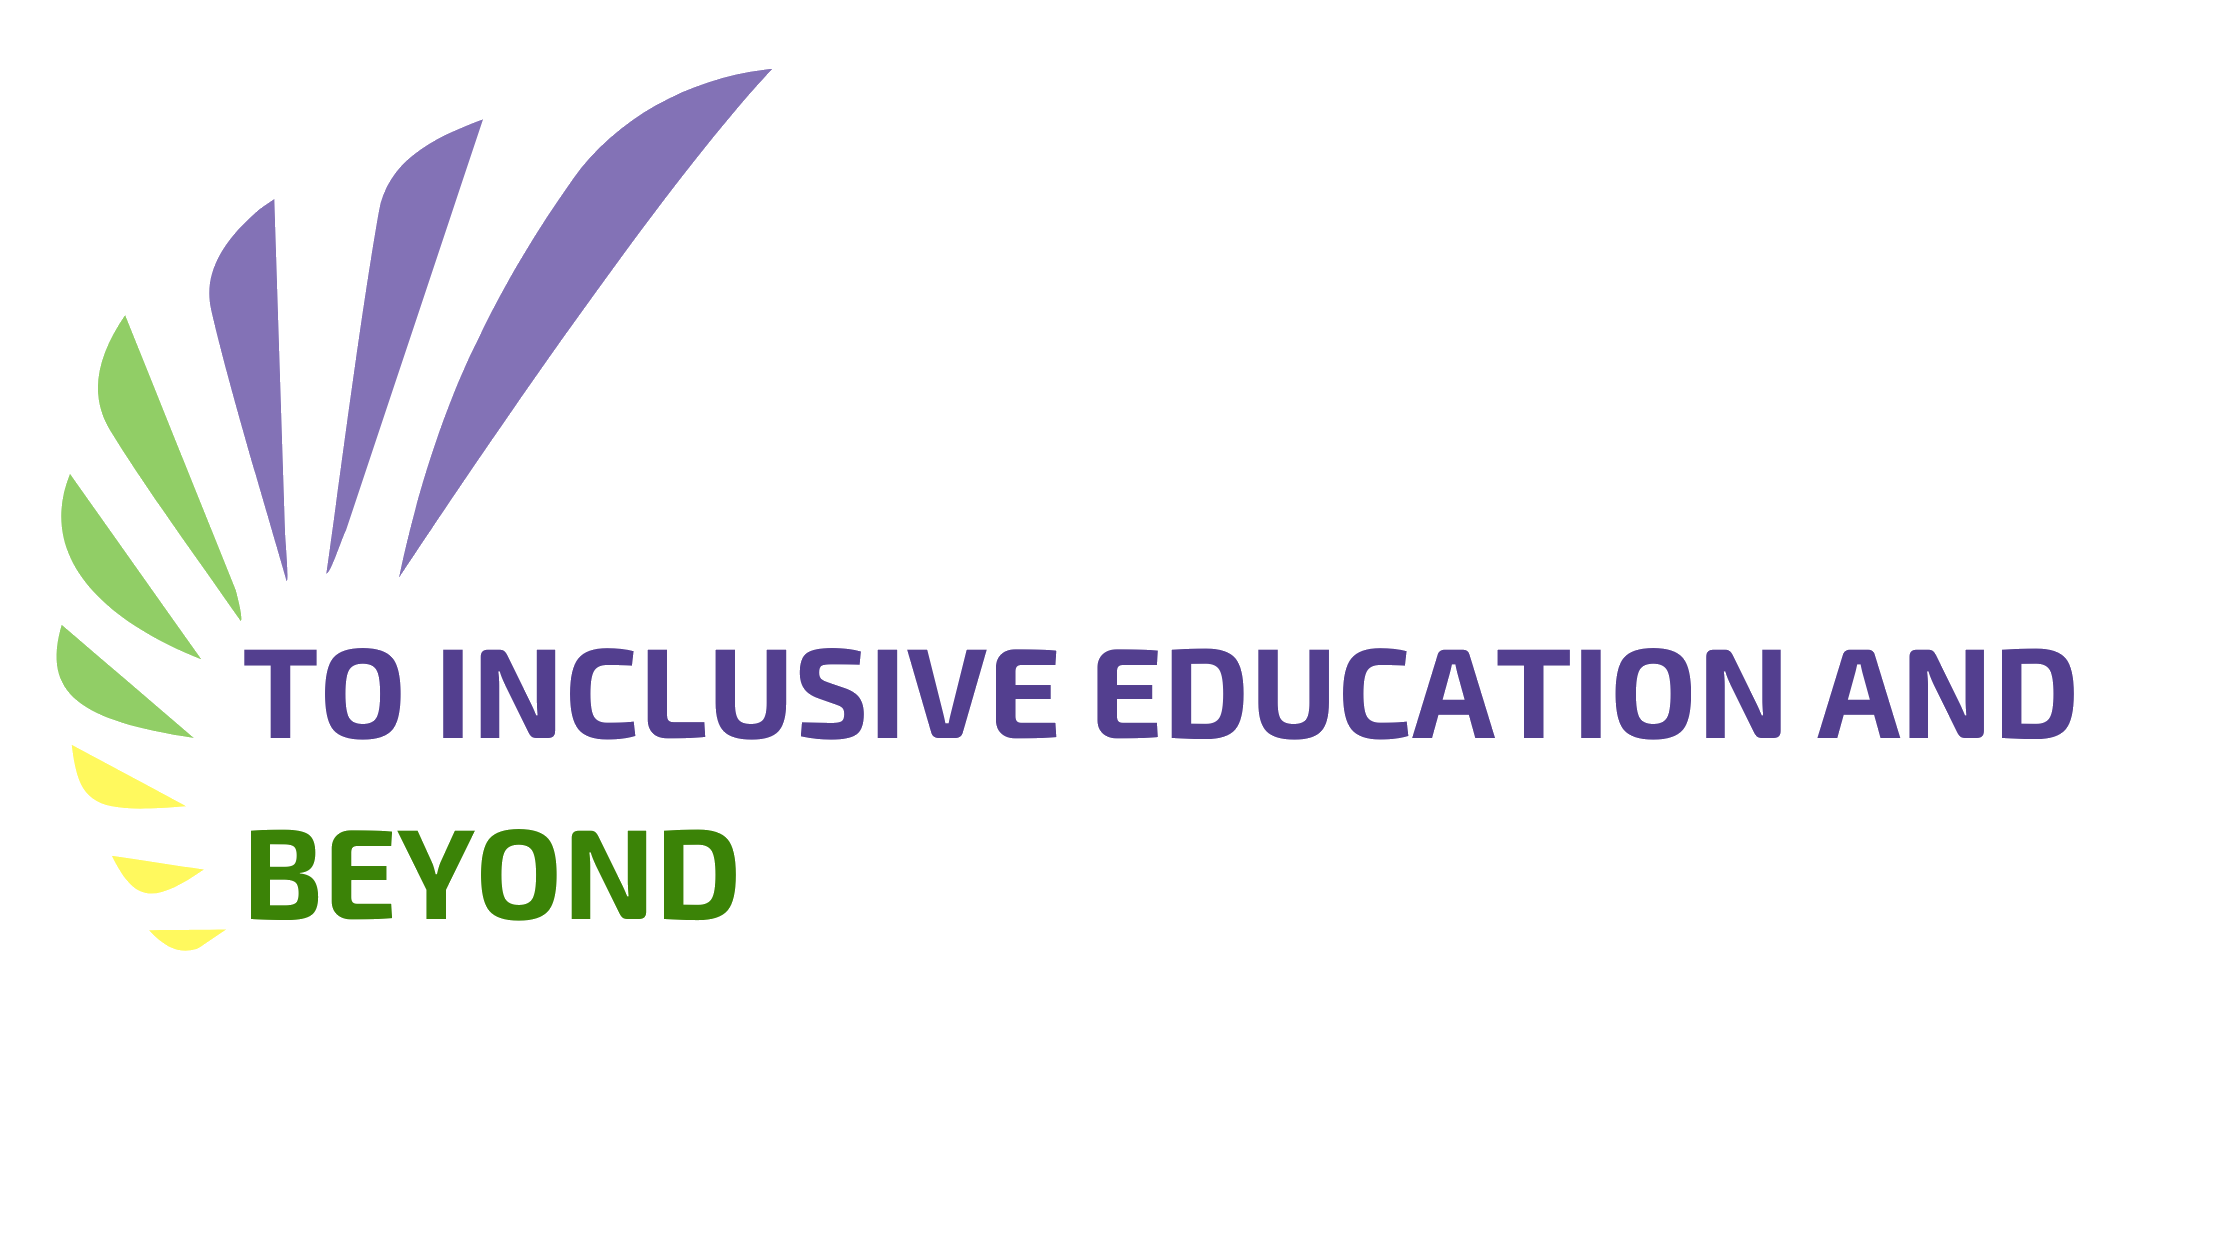 To Inclusive Education and BEYOND